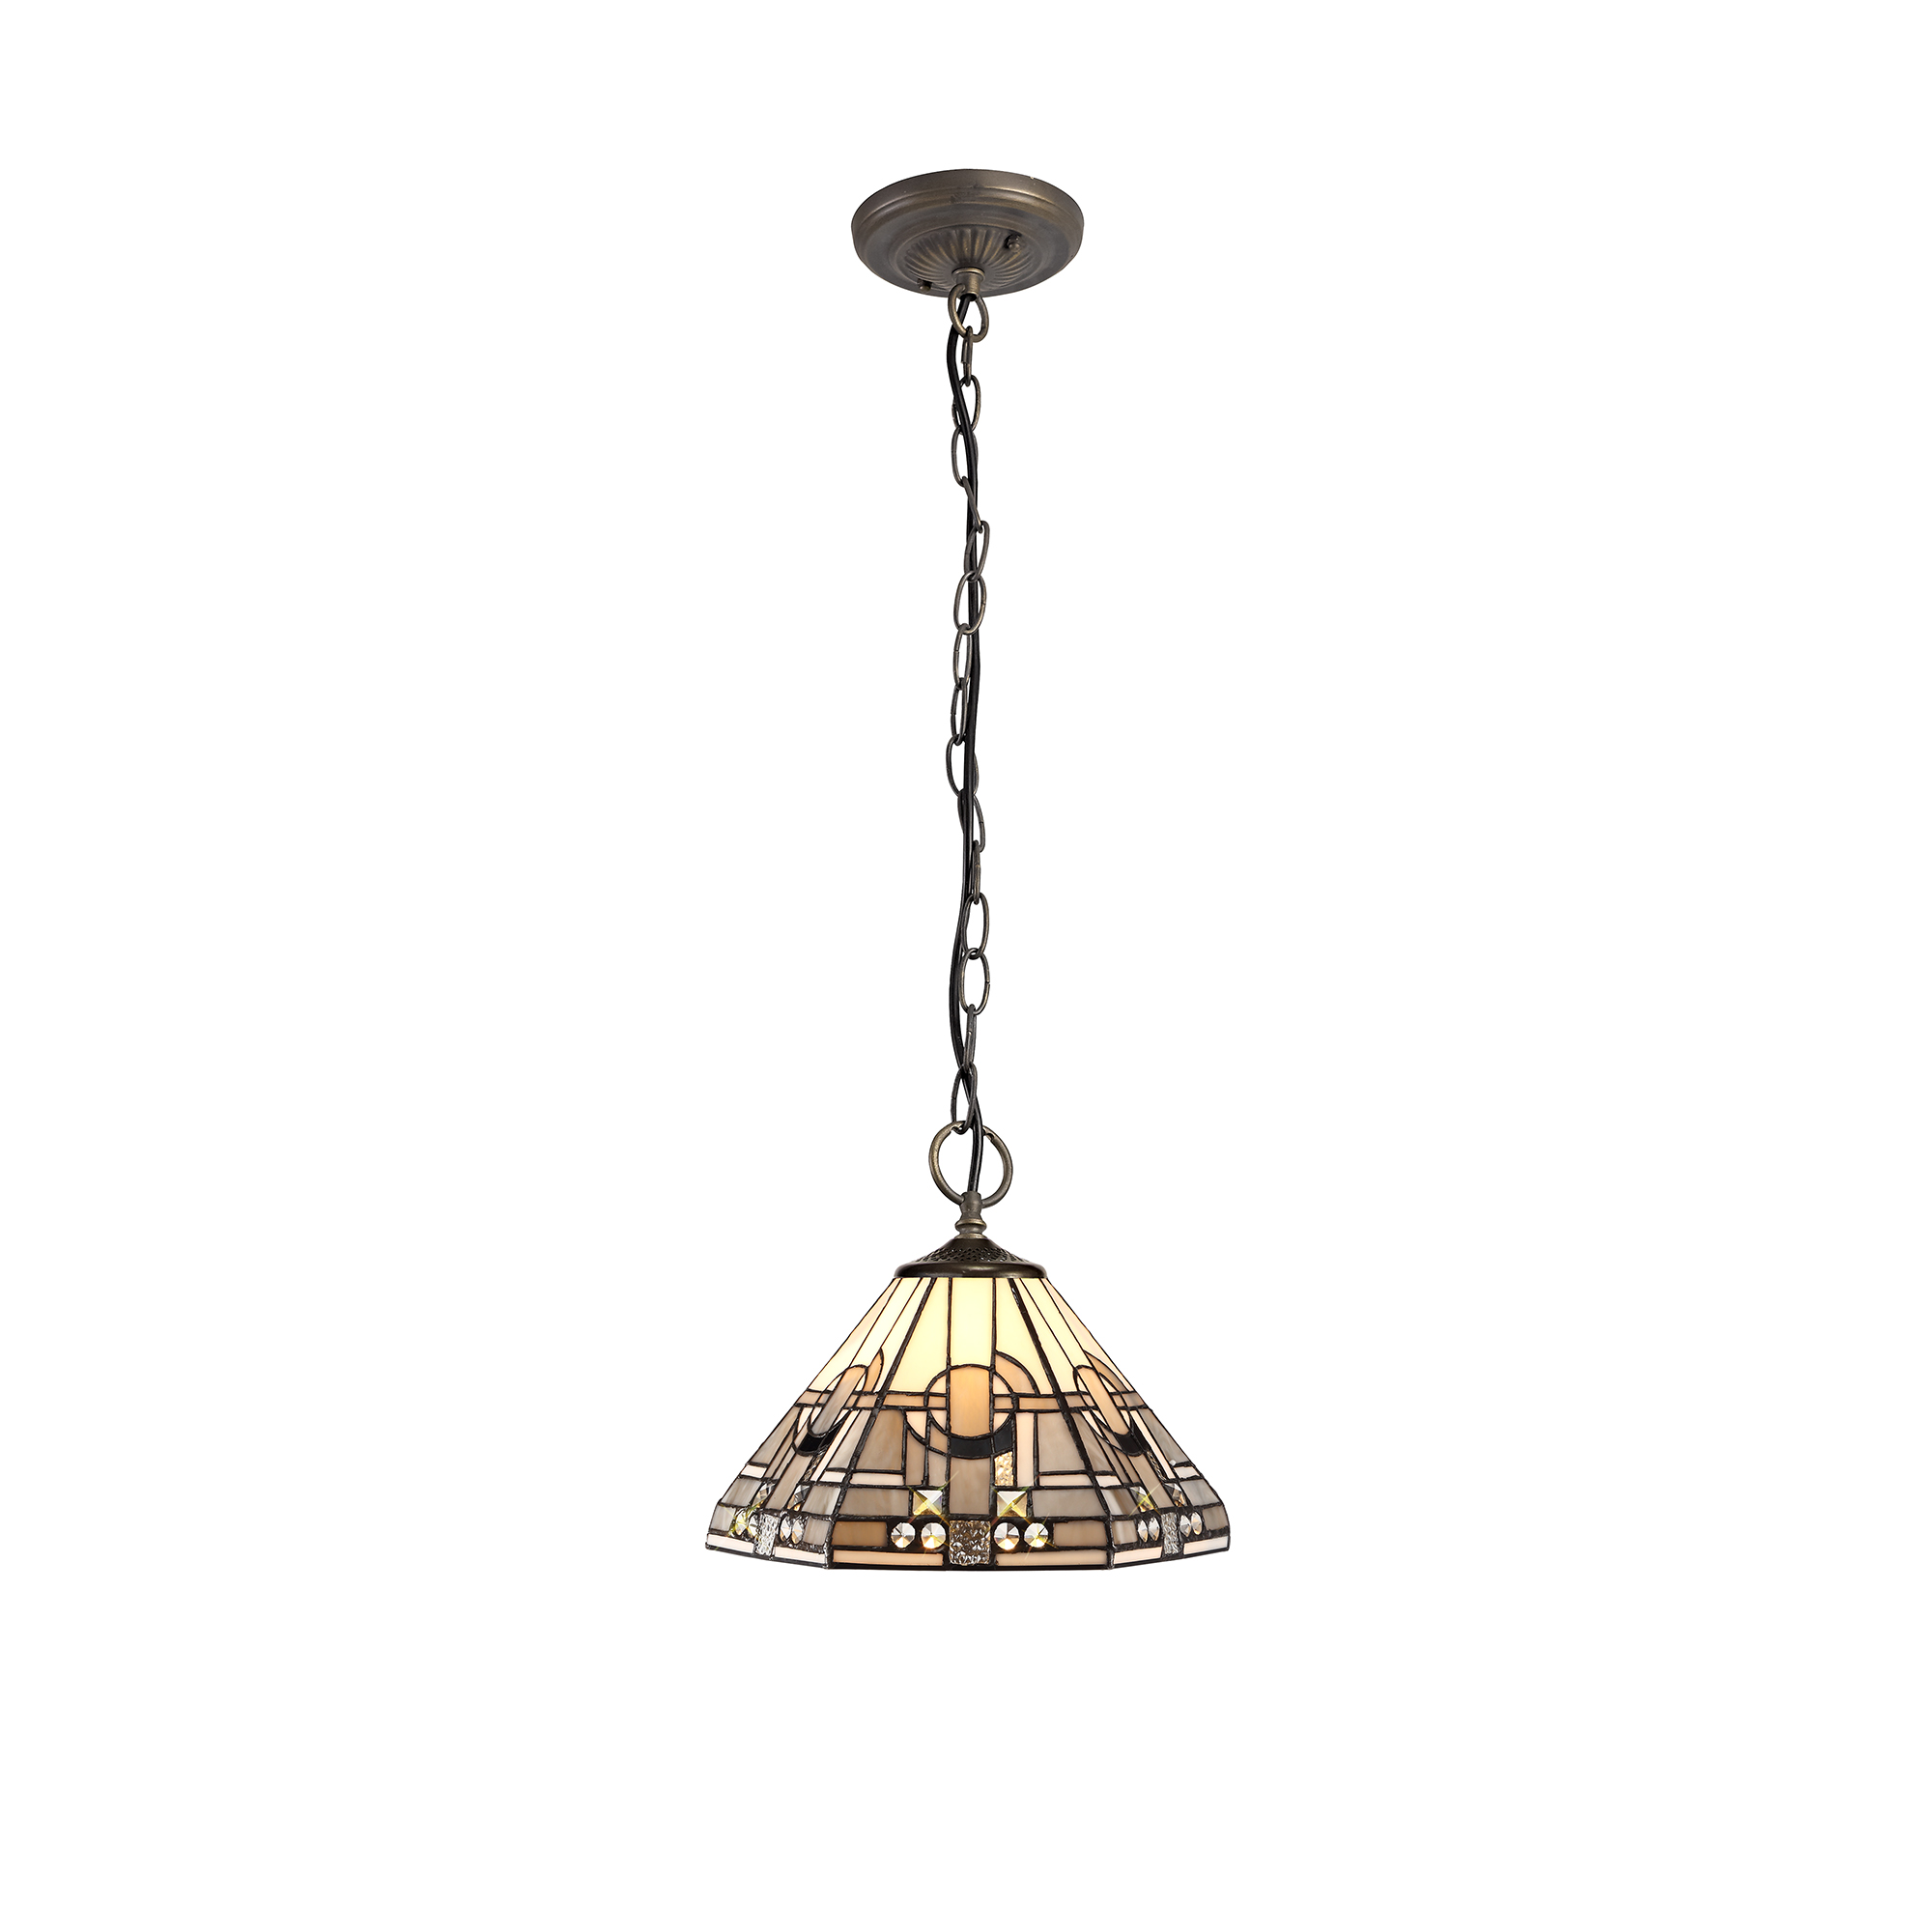 3 Light Downlighter Pendant E27 With 30cm Tiffany Shade, White/Grey/Black/Clear Crystal/Aged Antique Brass